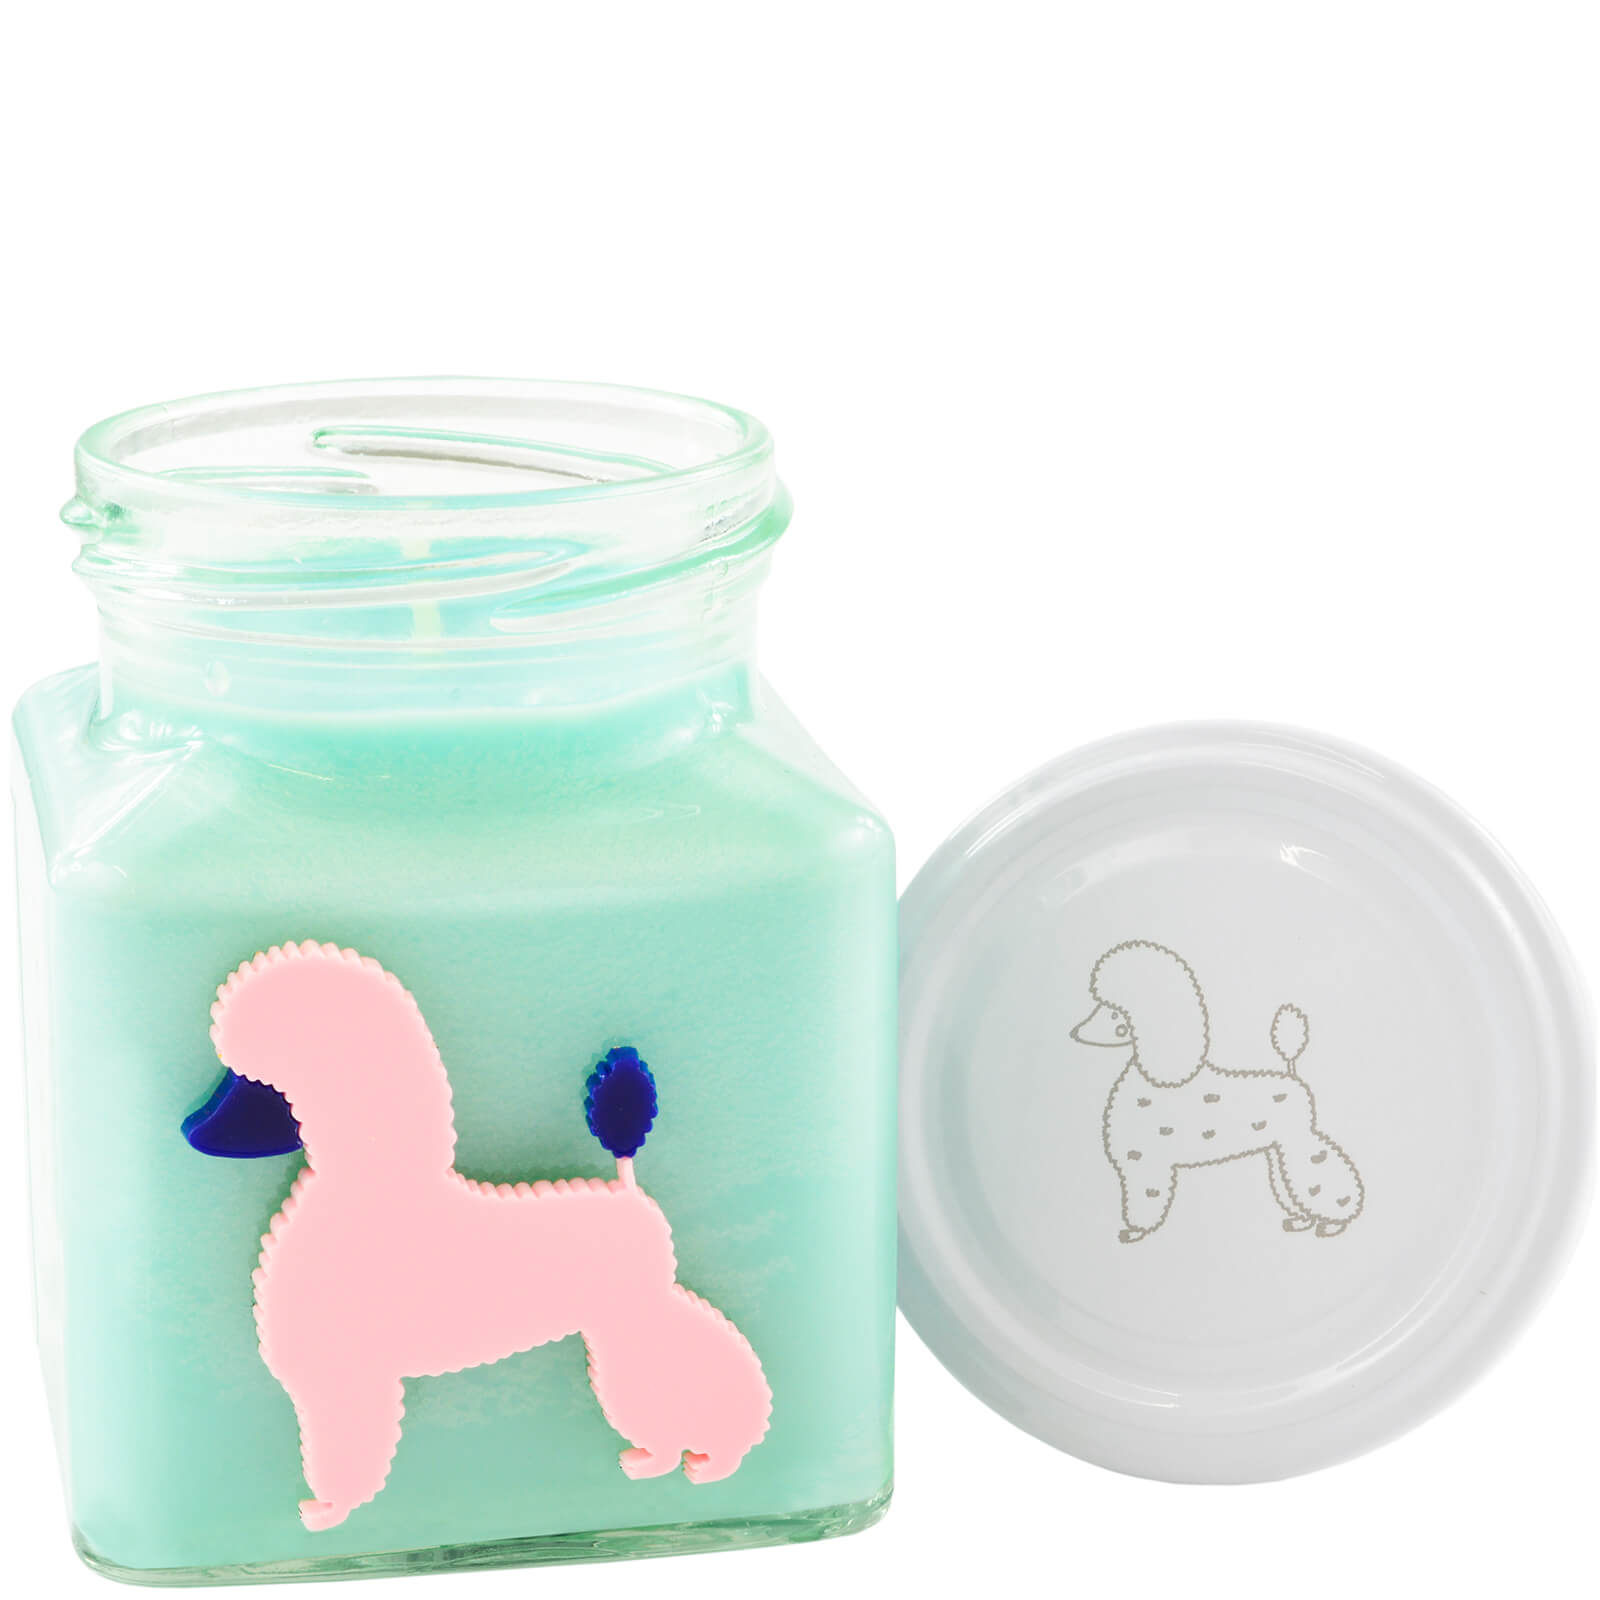 Turquoise Peaches and Cream Poodle Party Candle